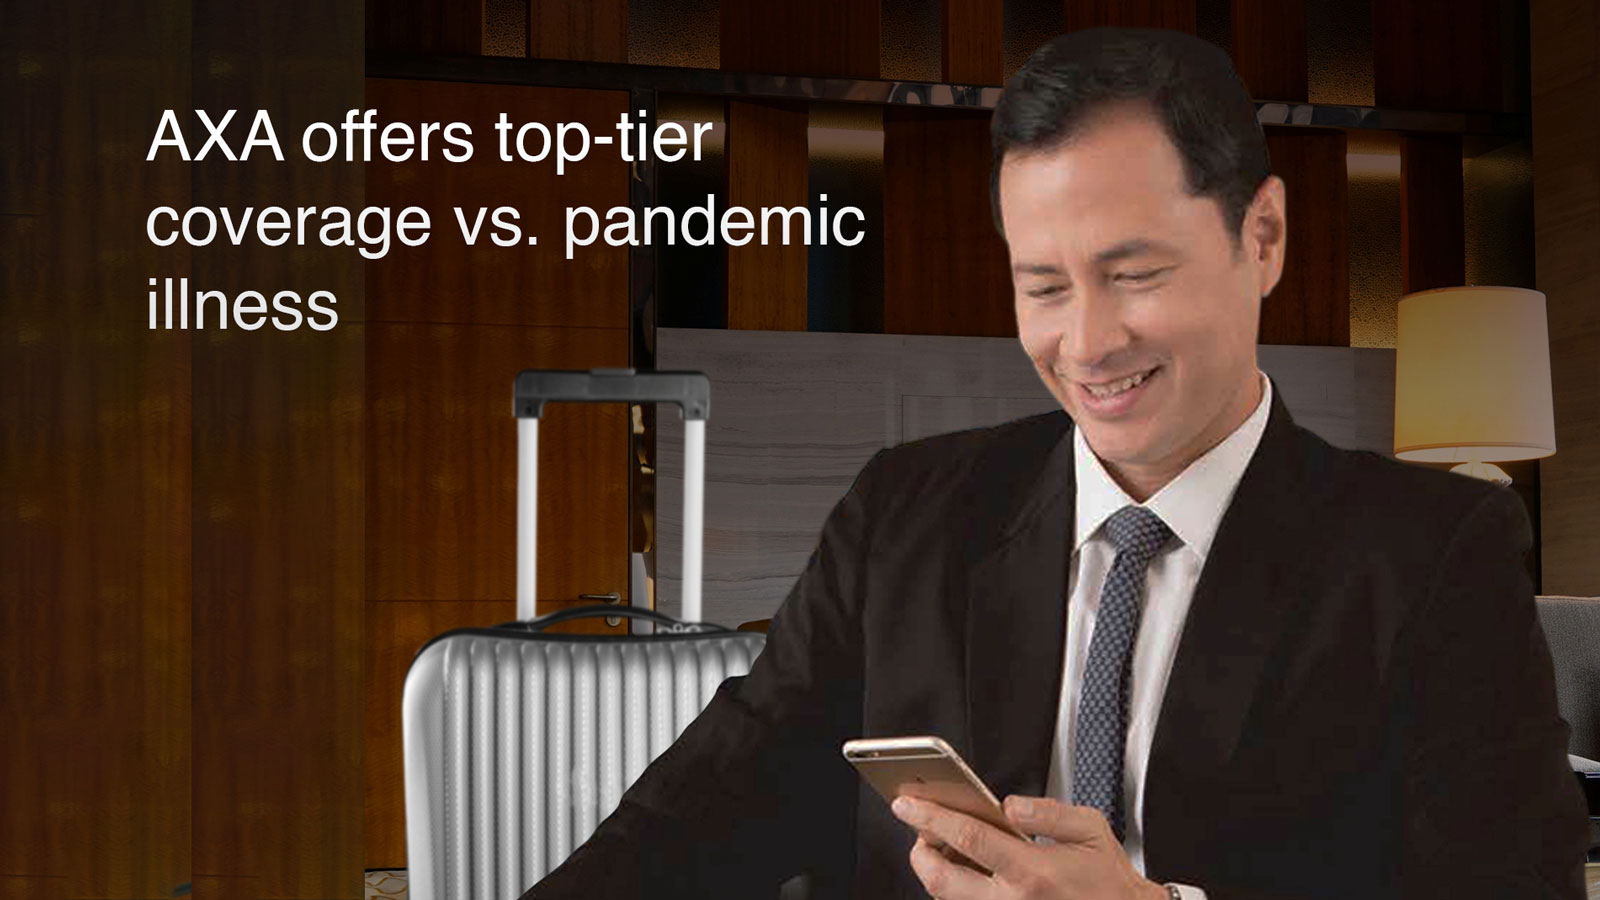 AXA health plan now offers top-tier coverage vs. pandemic illnesses